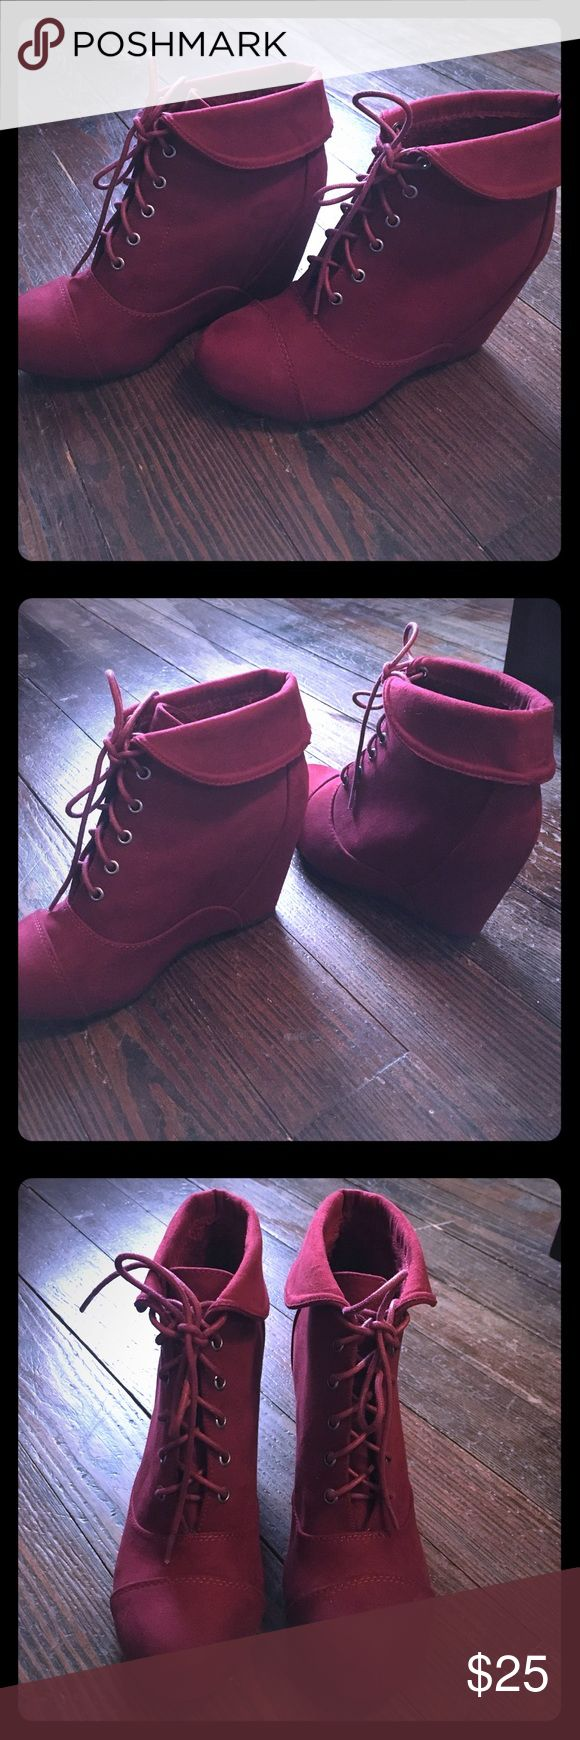 Maroon lace booties Maroon lace up booties, never worn! bamboo Shoes Ankle Boots & Booties